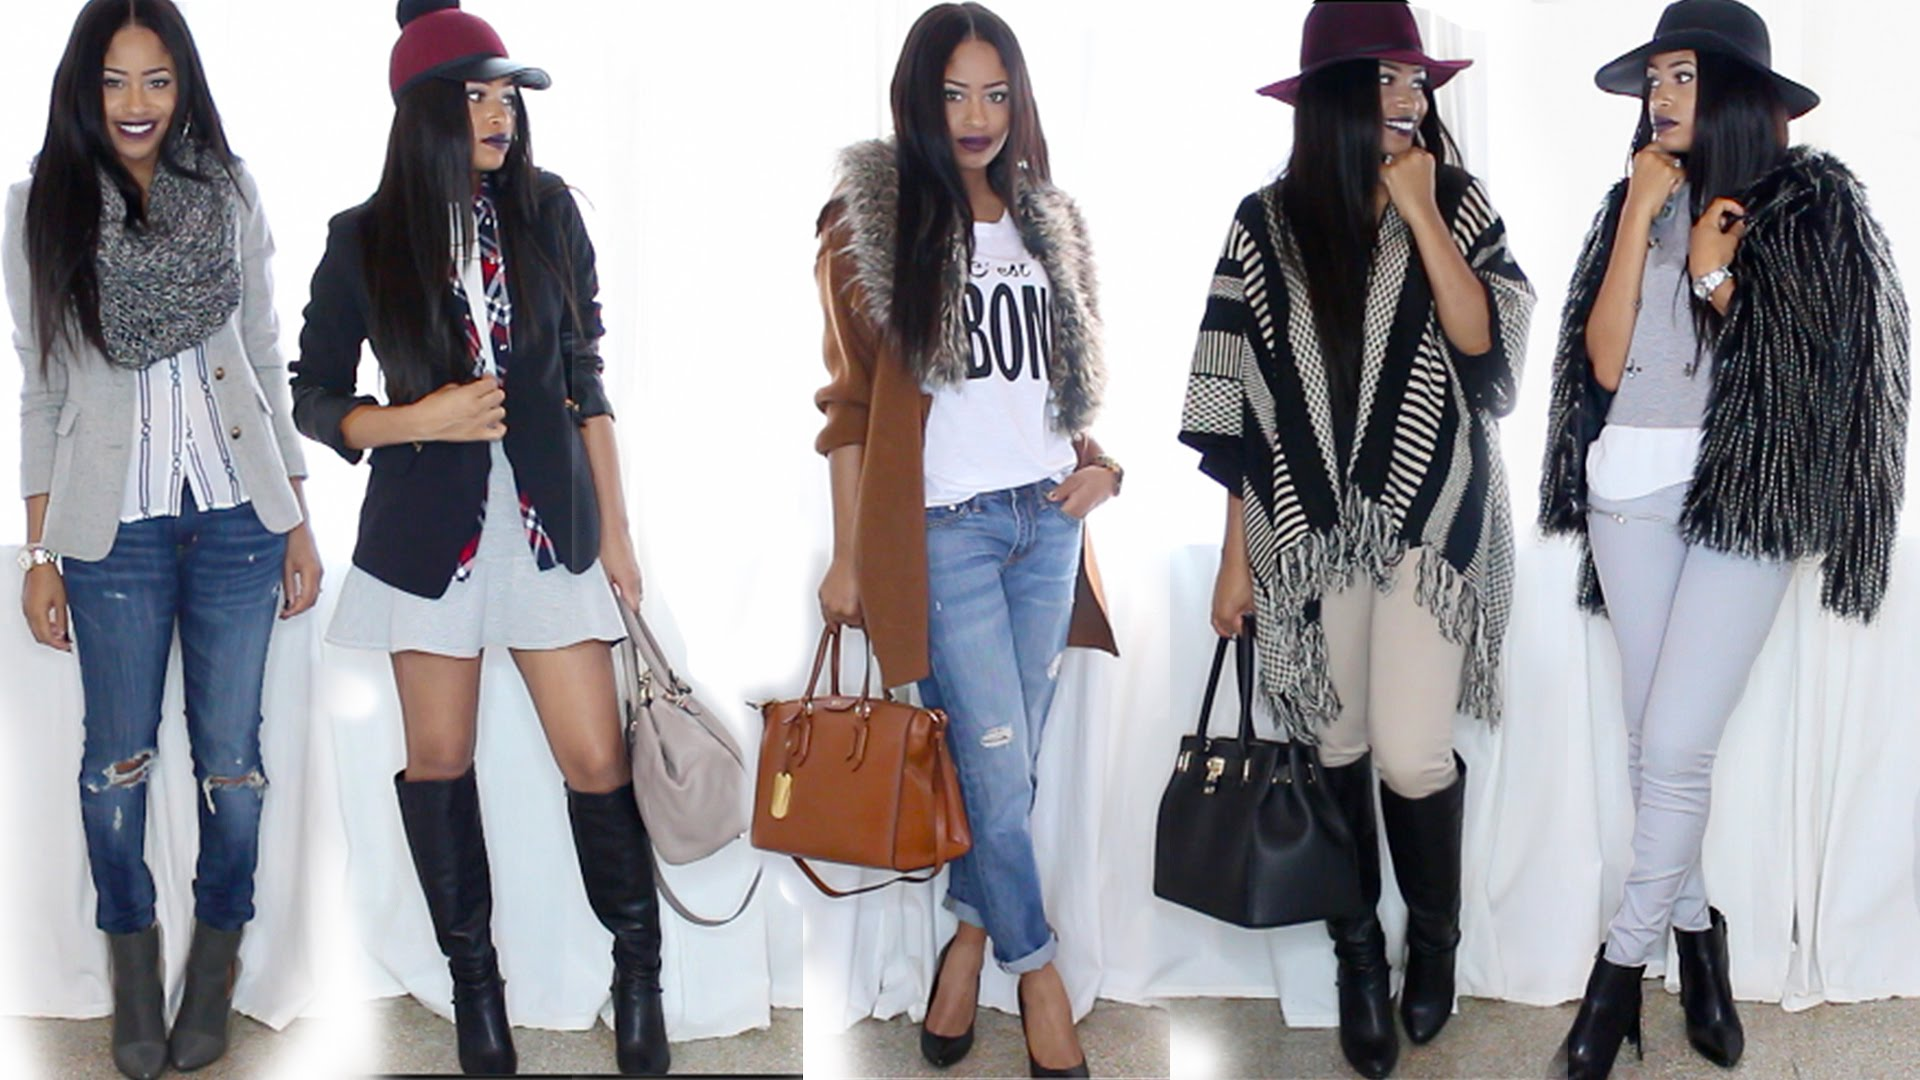 Top 10 Cute Winter Outfit Ideas For Ladies Youth Village Zimbabwe